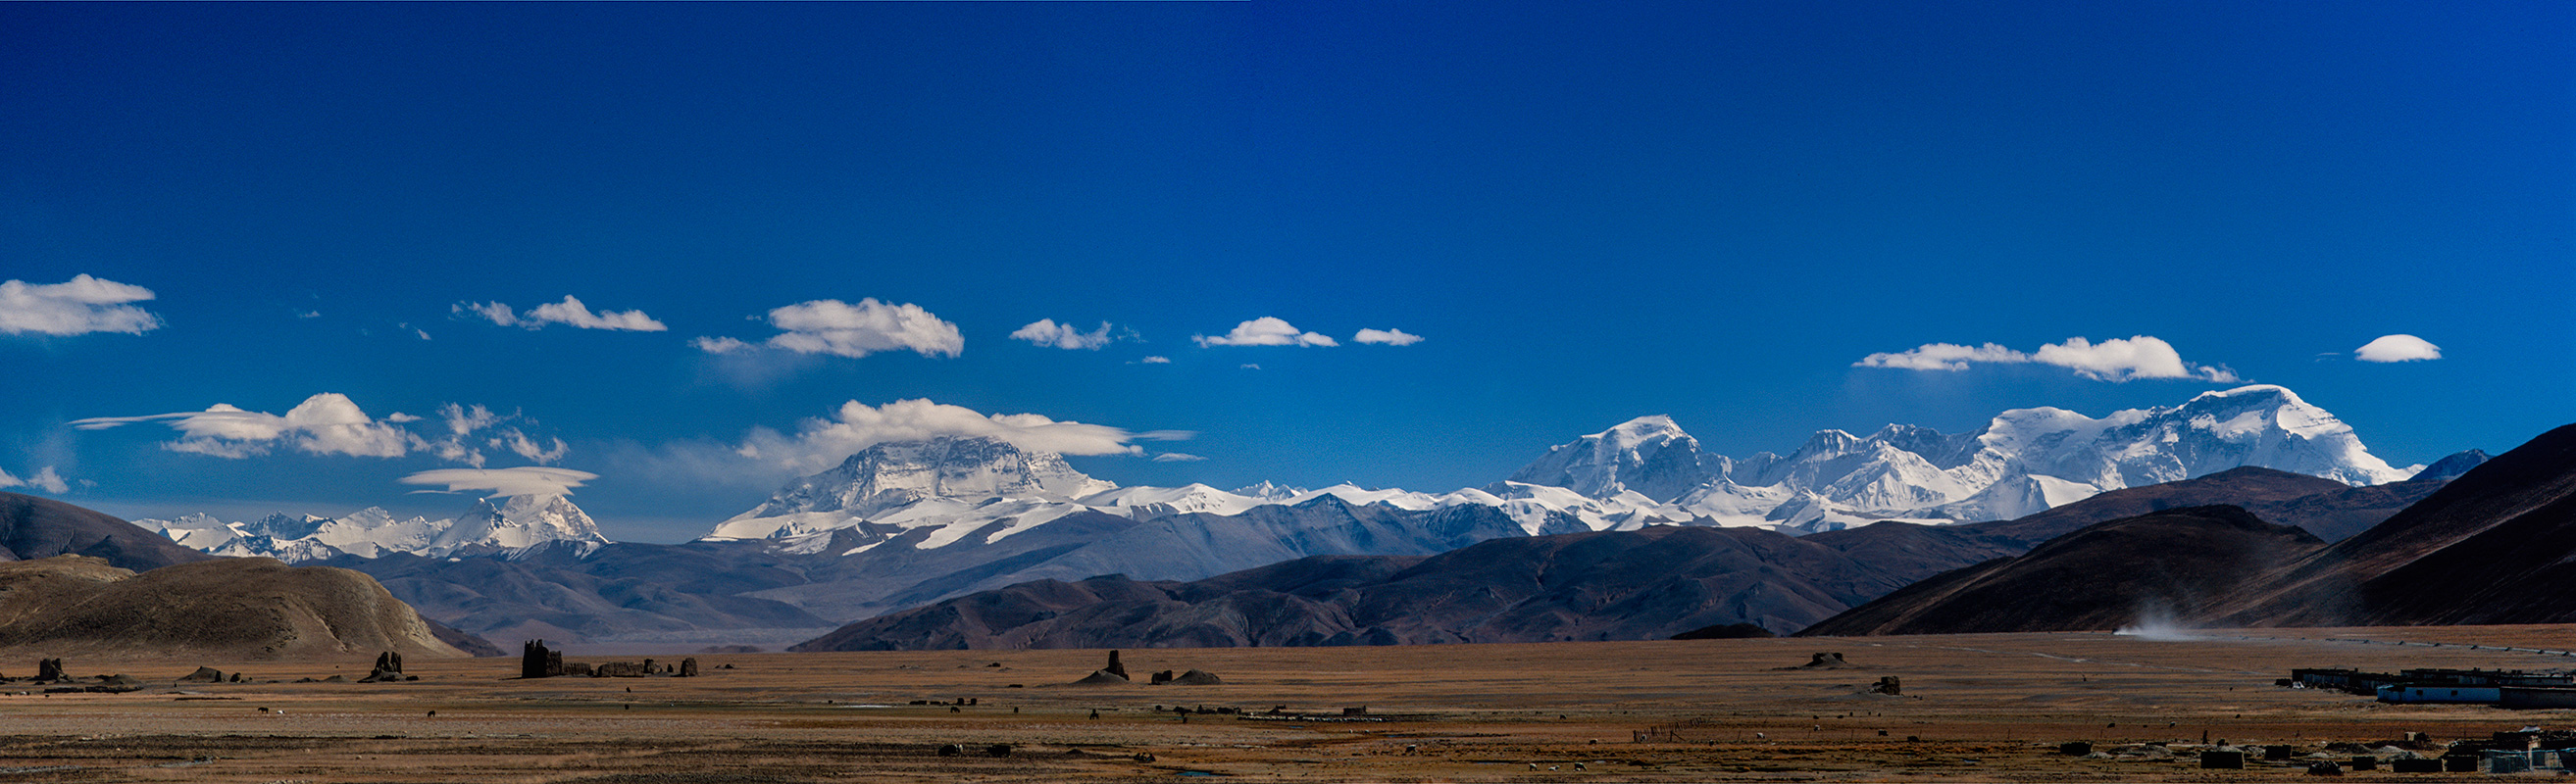 Makalu, Lhotse, Everest, Gyachung Kang and Cho Oyu seend from the Tibetan plateau near TingriA stitch of two images